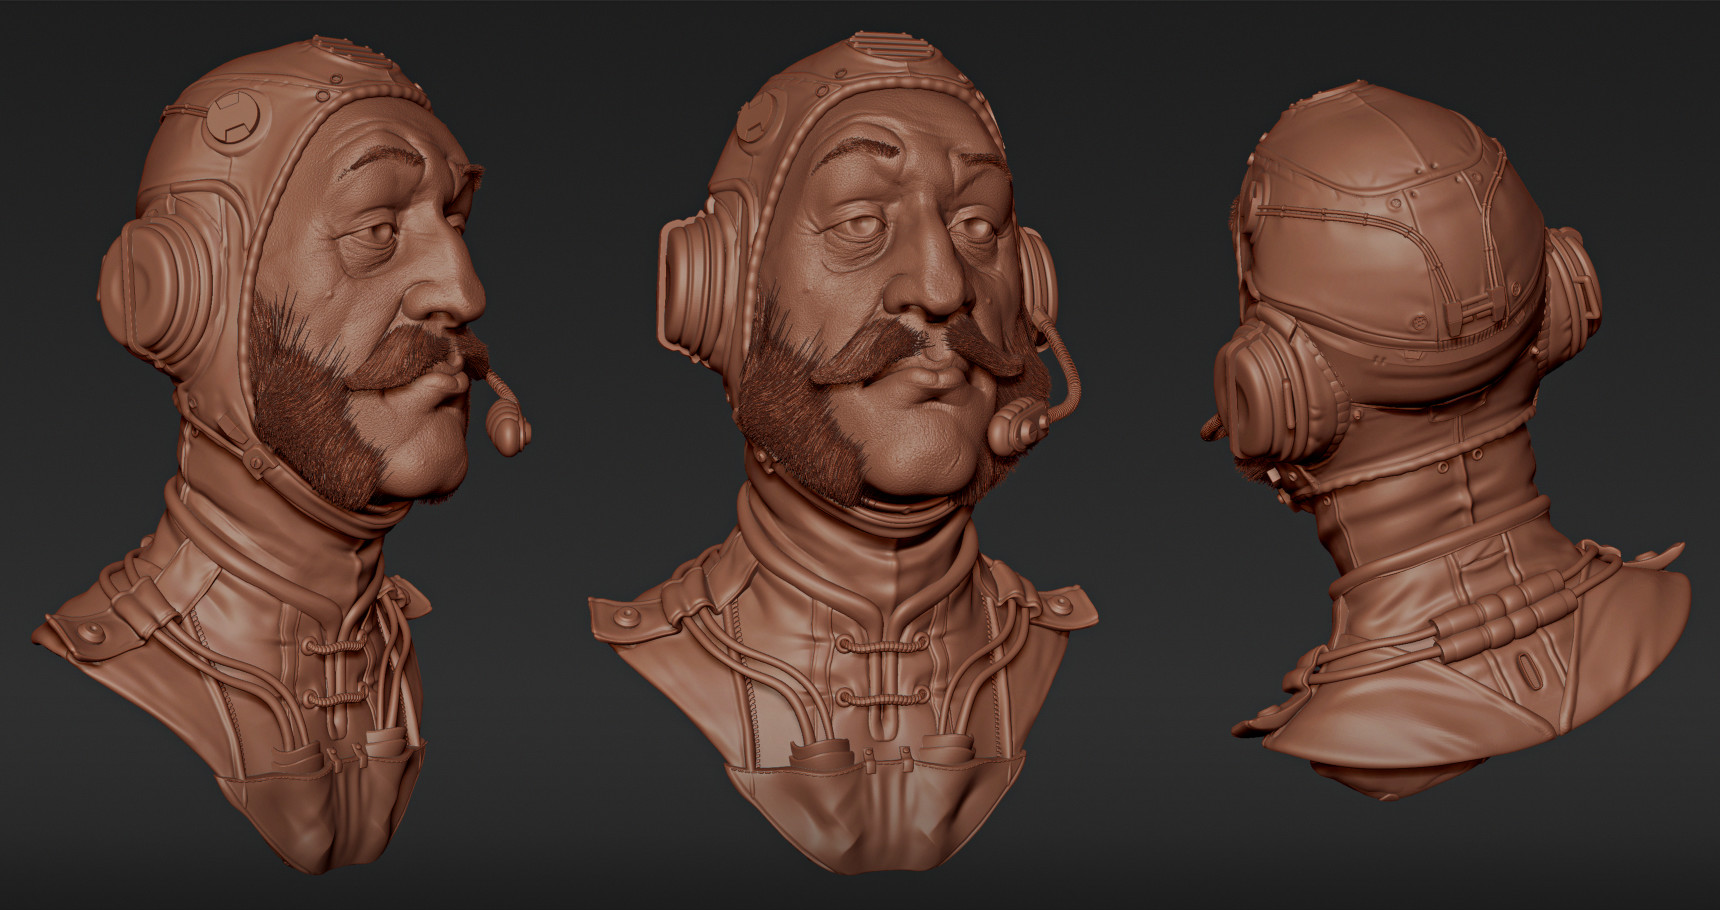 Matthew kean zbrush document